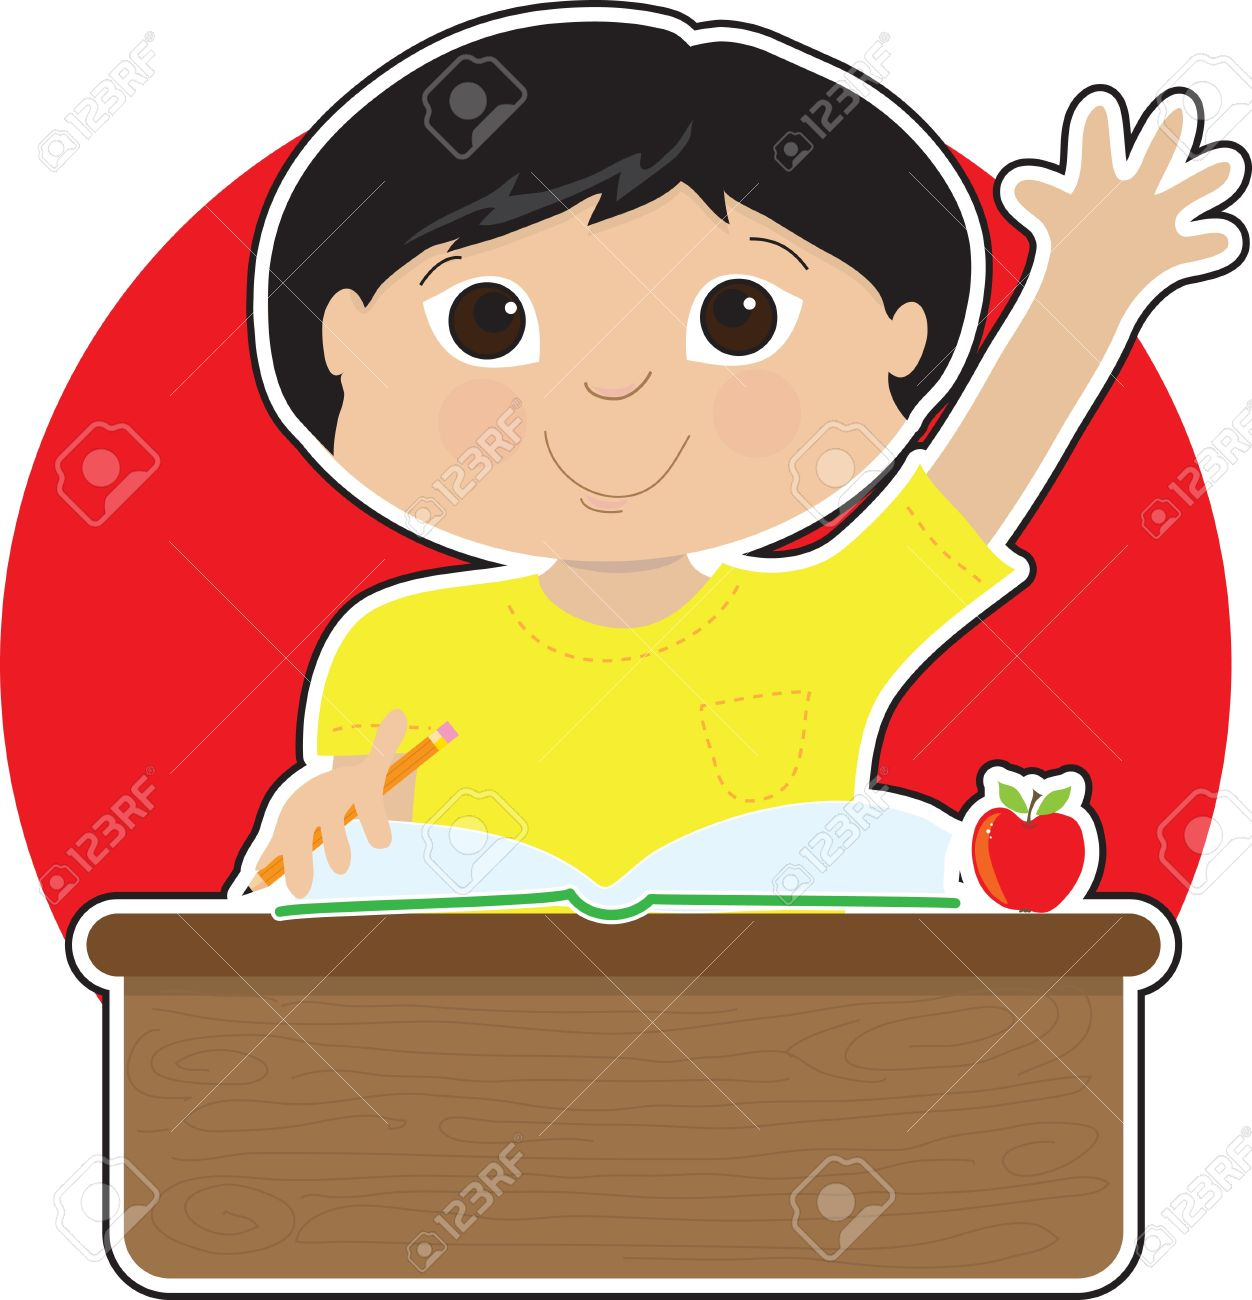 A little Asian boy is raising his hand to answer a question in school - there is a book and an apple on his desk Stock Vector - 10433178